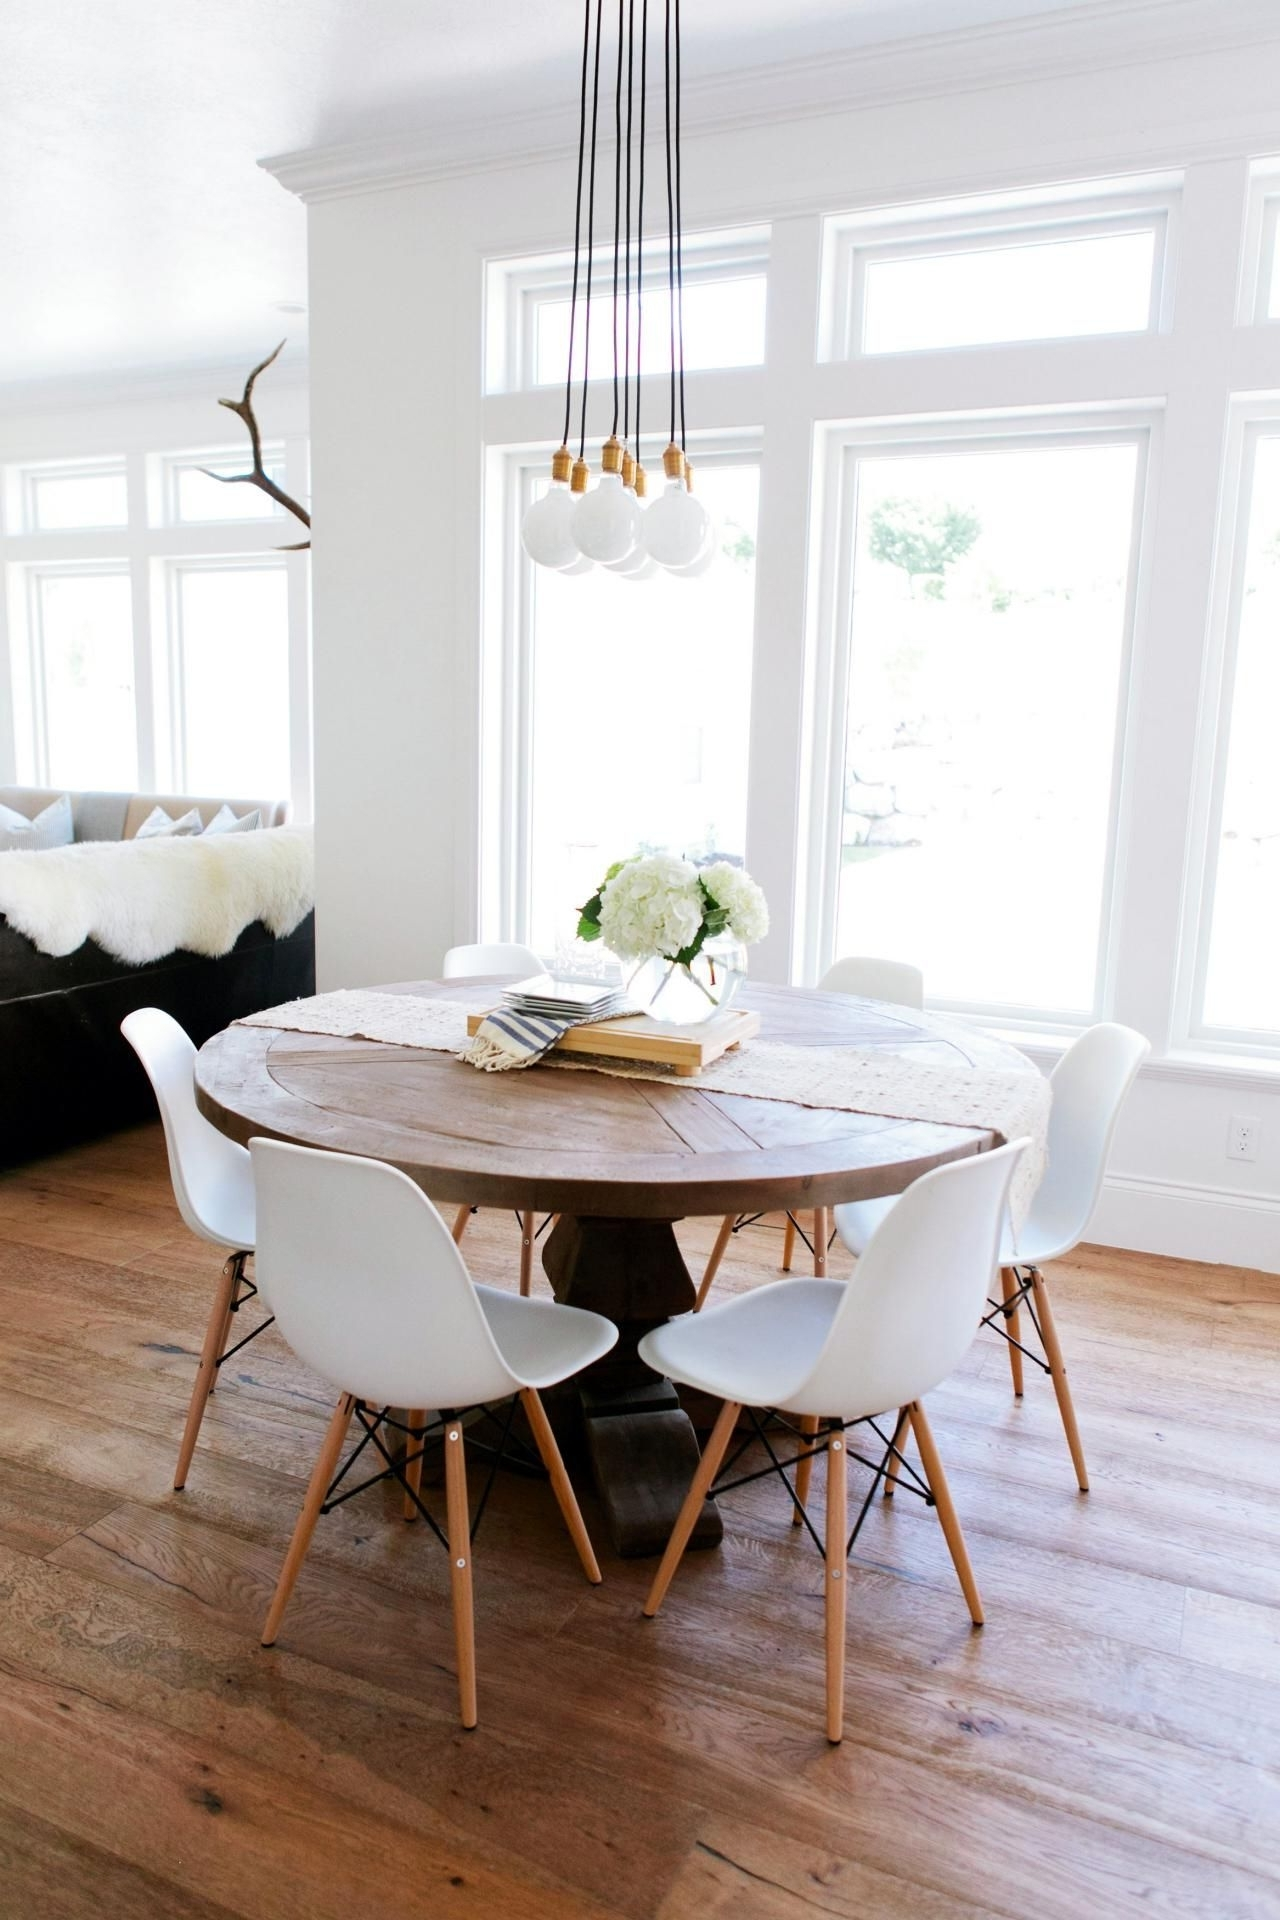 A Rustic Round Wood Table Surroundedwhite Eames Dining Chairs With Regard To Latest White Dining Tables And Chairs (Gallery 20 of 25)